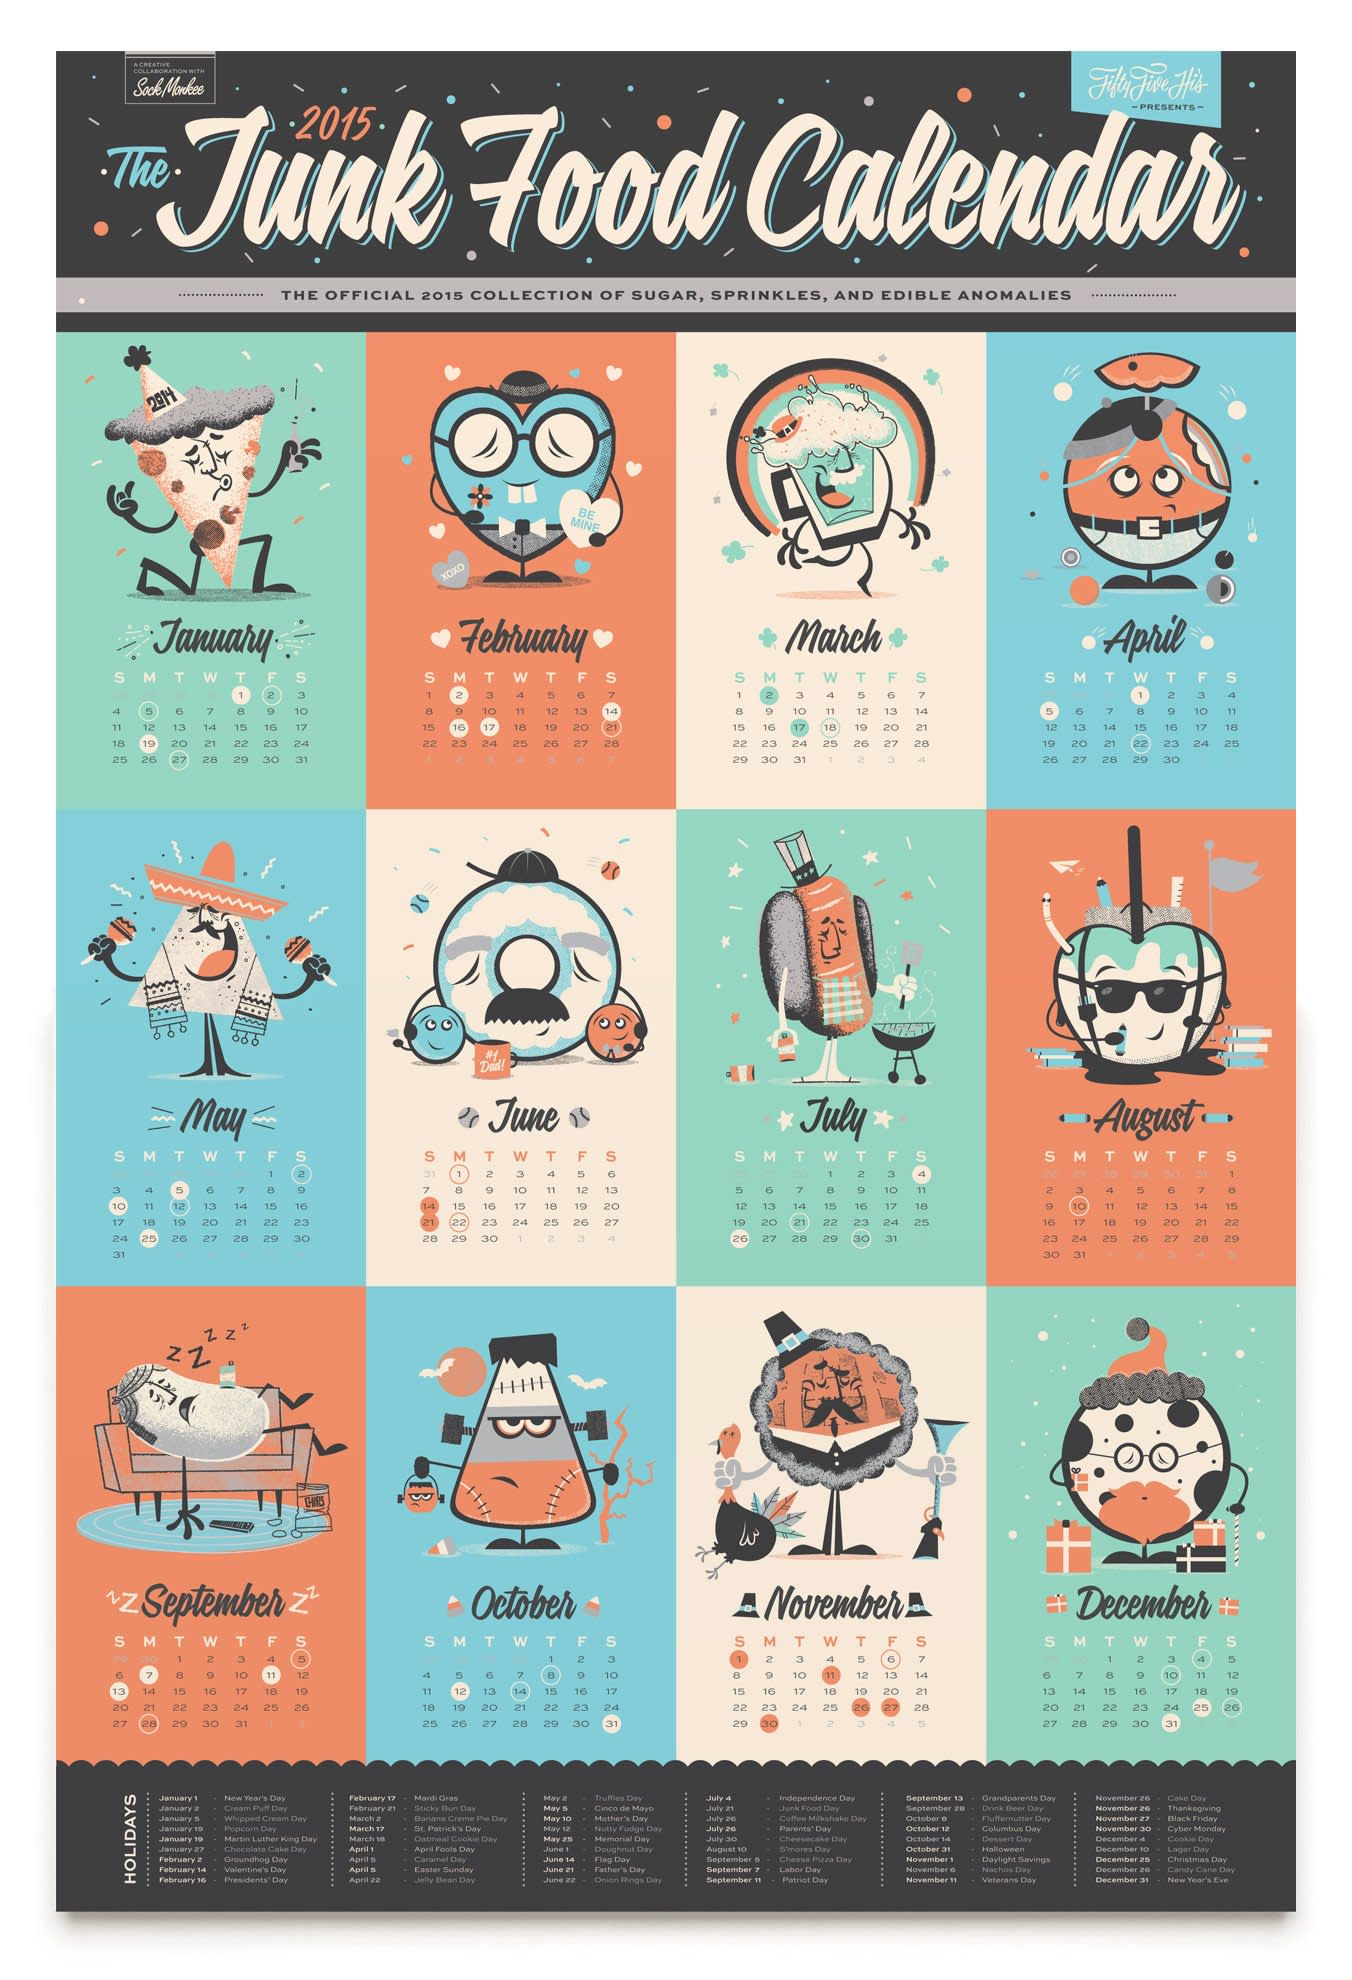 15 Food-Filled Calendars for 2015: gallery image 8